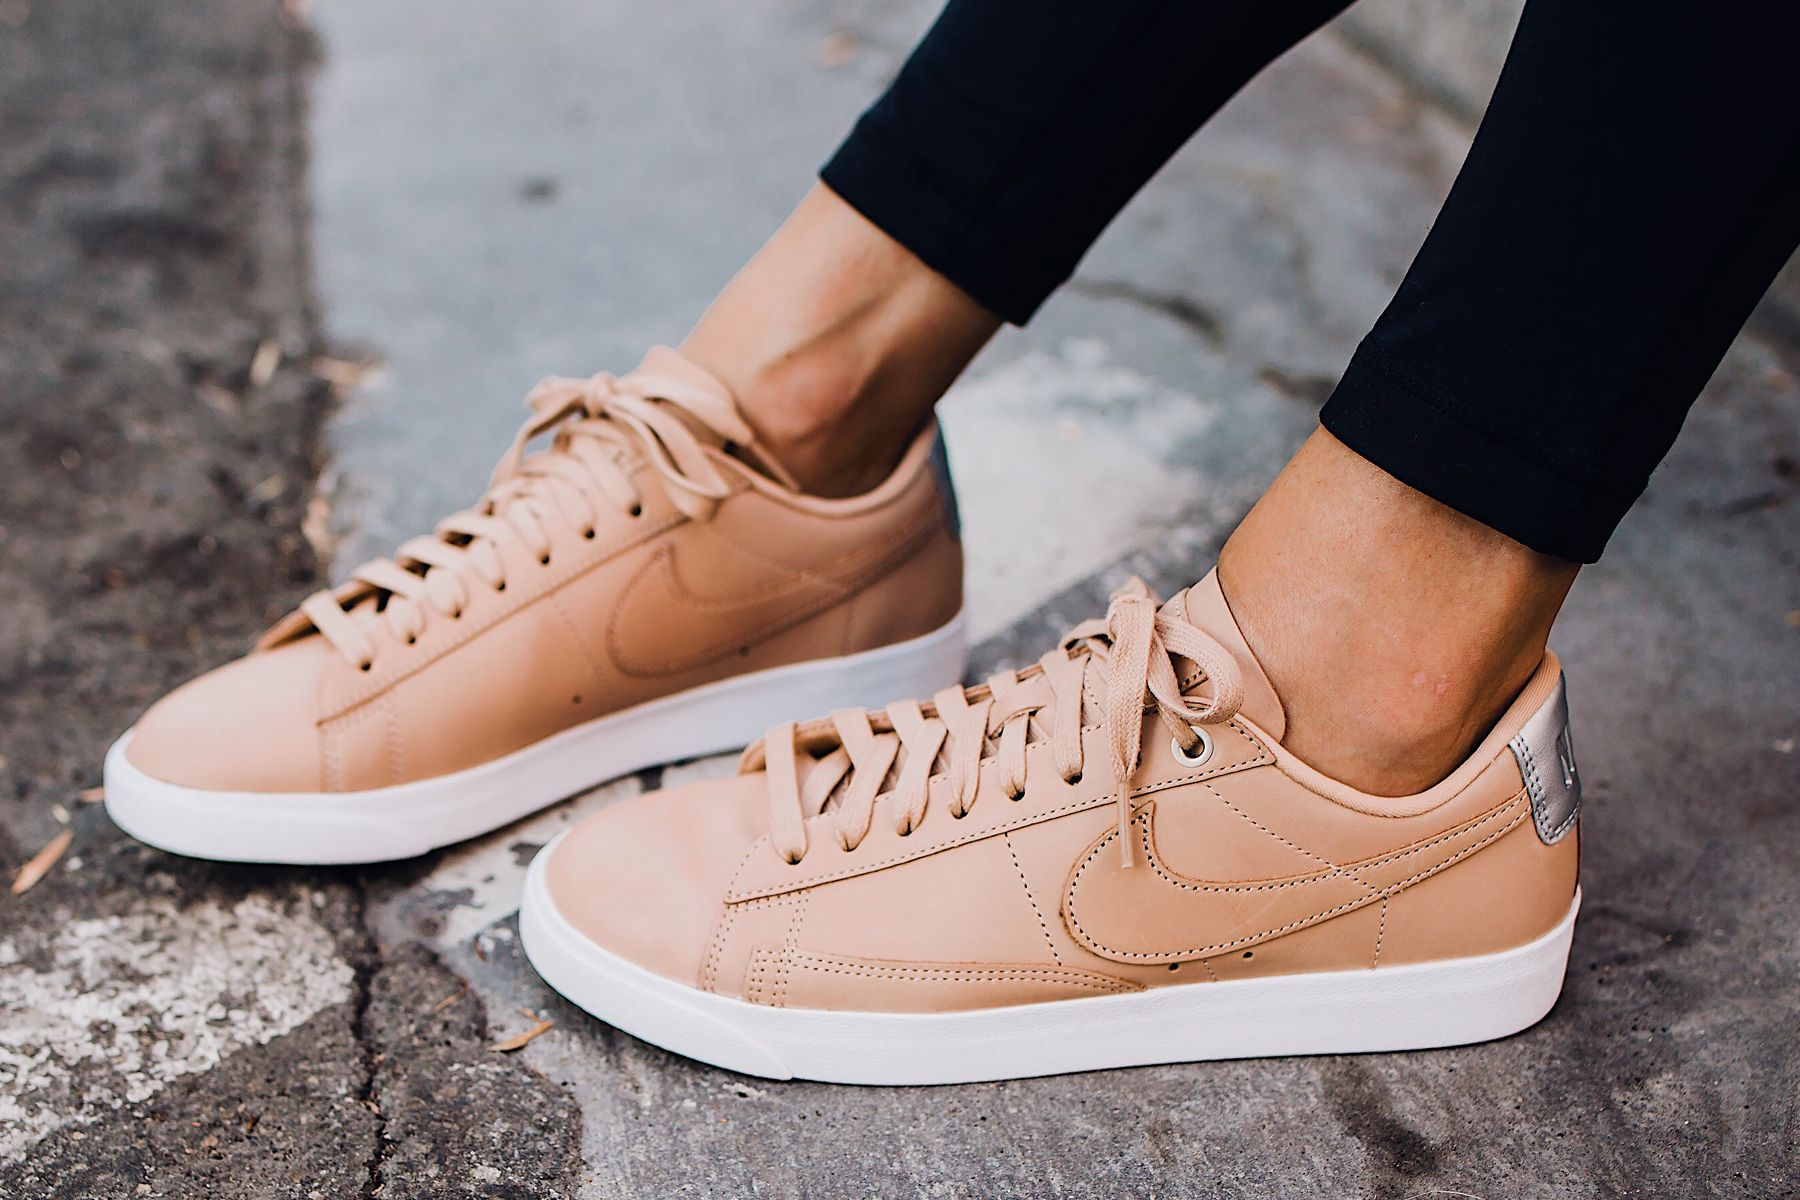 94a3b12ddd Woman Wearing Nordstrom Nike Blazer Low Top Sneaker Beige Fashion Jackson  San Diego Fashion Blogger Street Style